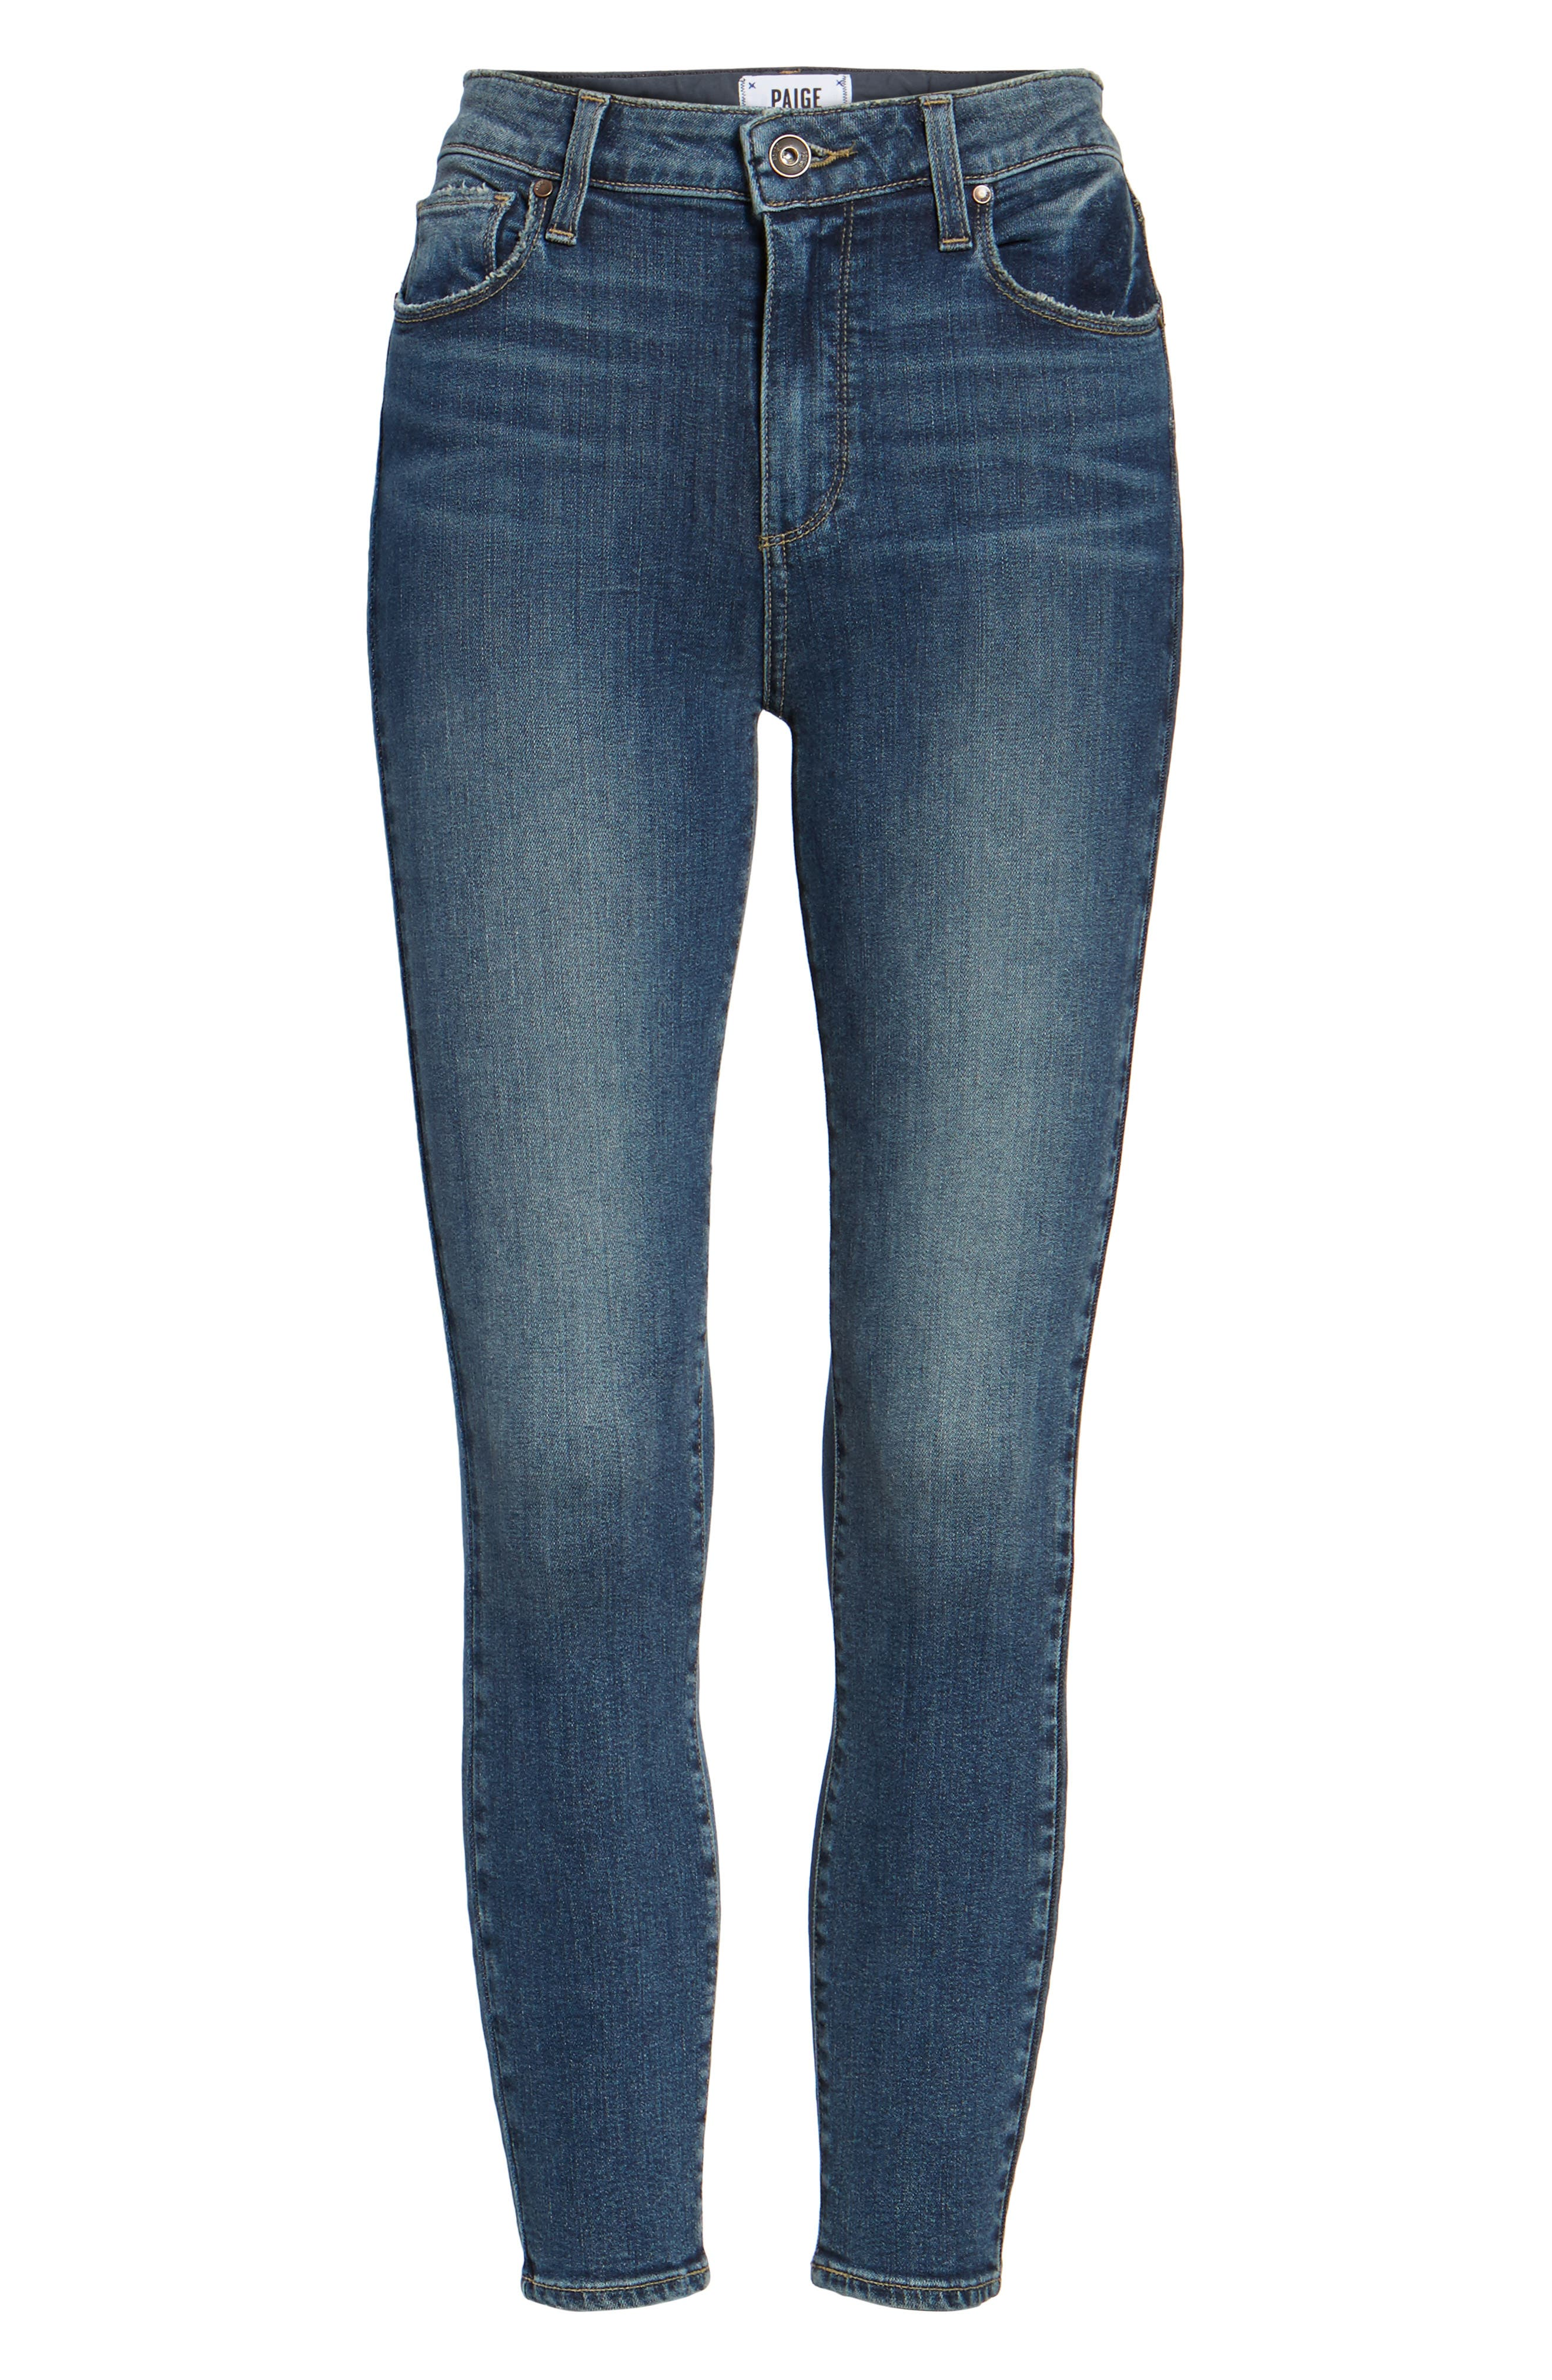 Hoxton High Waist Crop Skinny Jeans,                             Alternate thumbnail 7, color,                             400